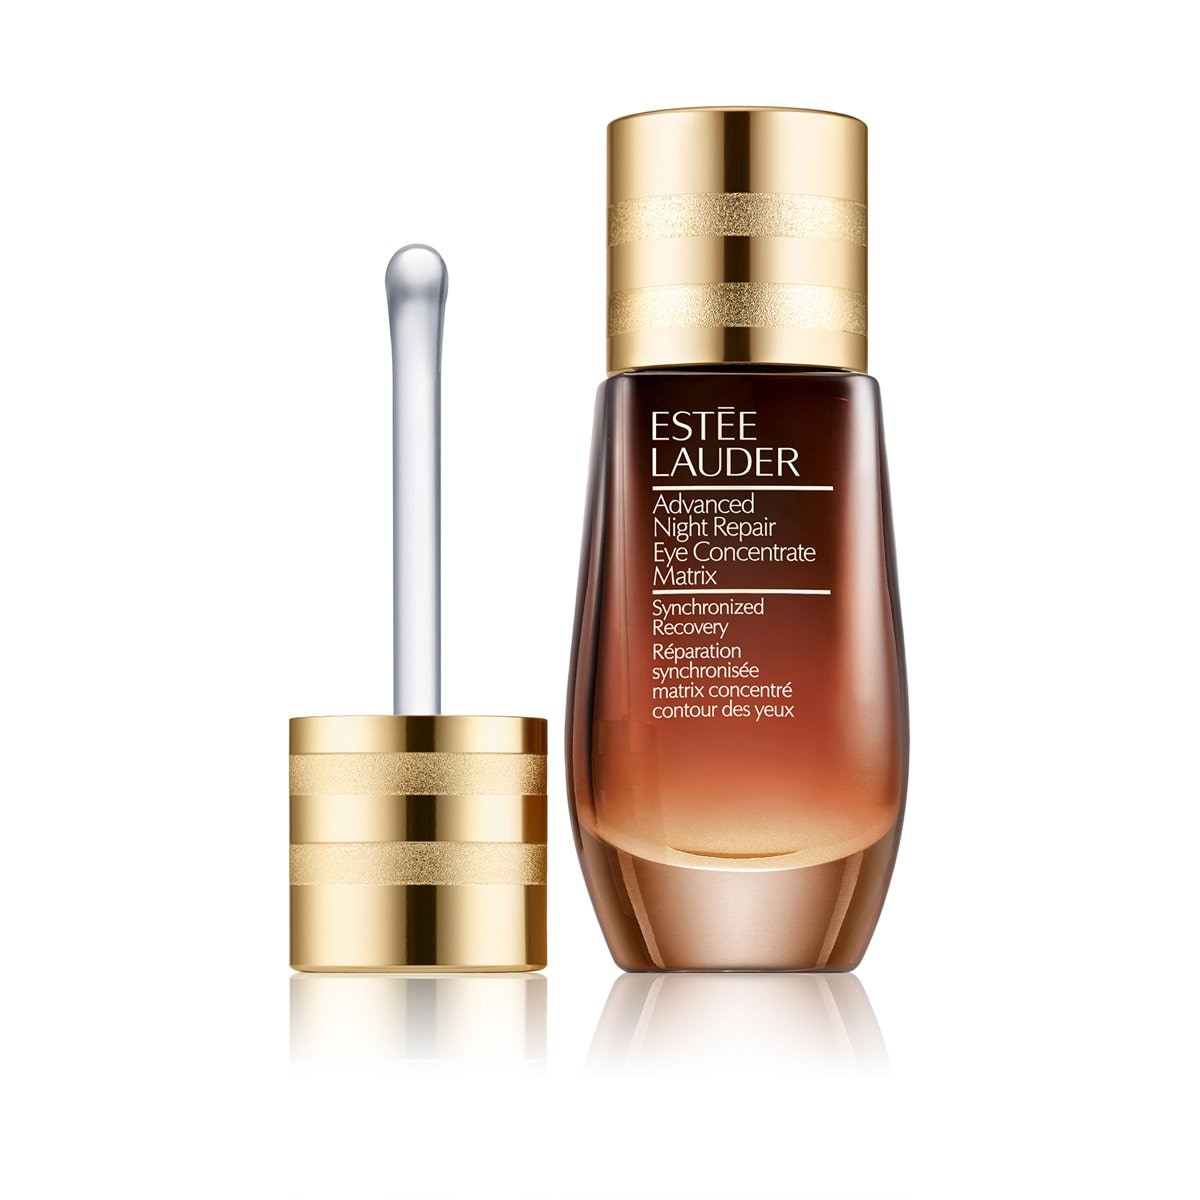 Suero Estée Lauder Advanced Night Repair Concentrado con Tecnología Matrix Contorno de Ojos 30Ml